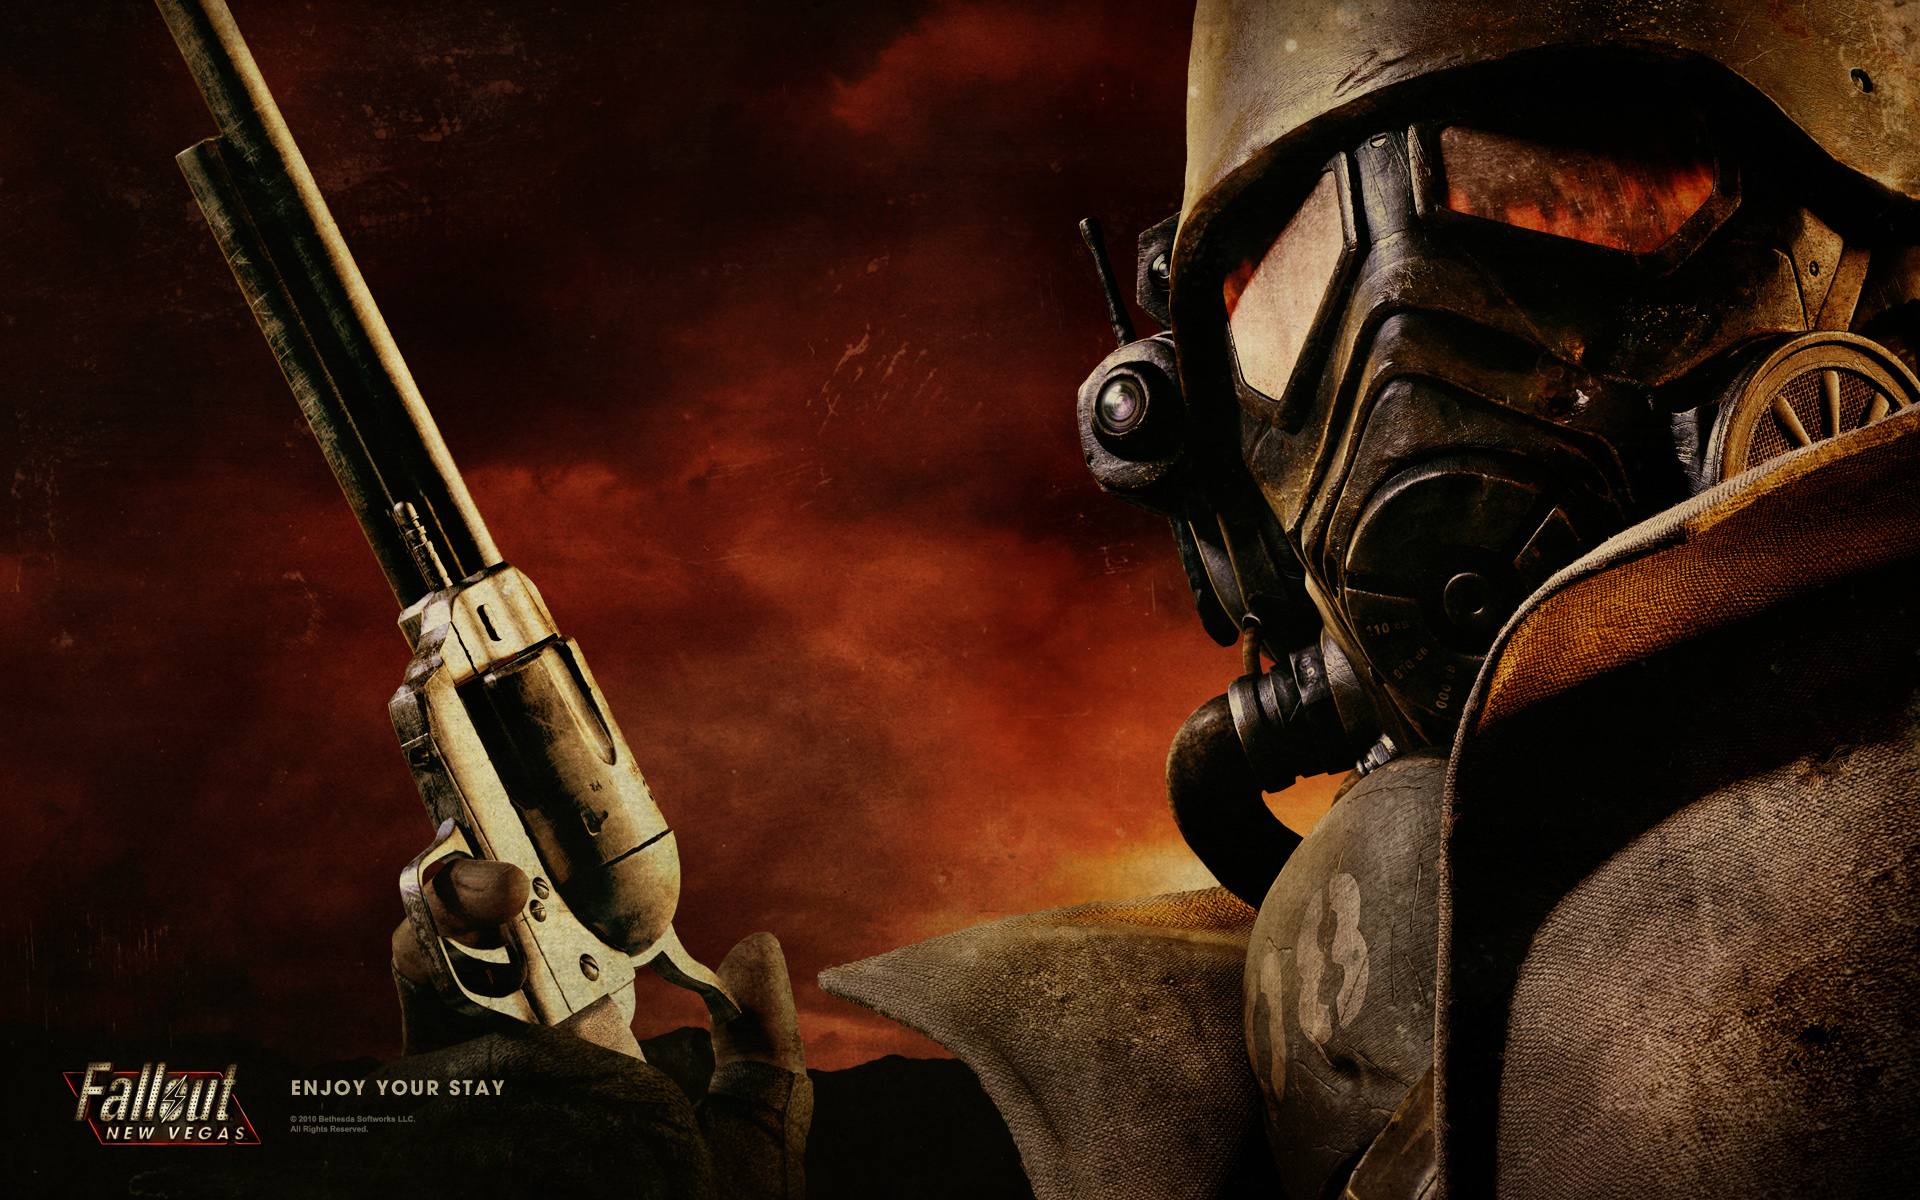 Fallout New Vegas Wallpaper 1920x1080